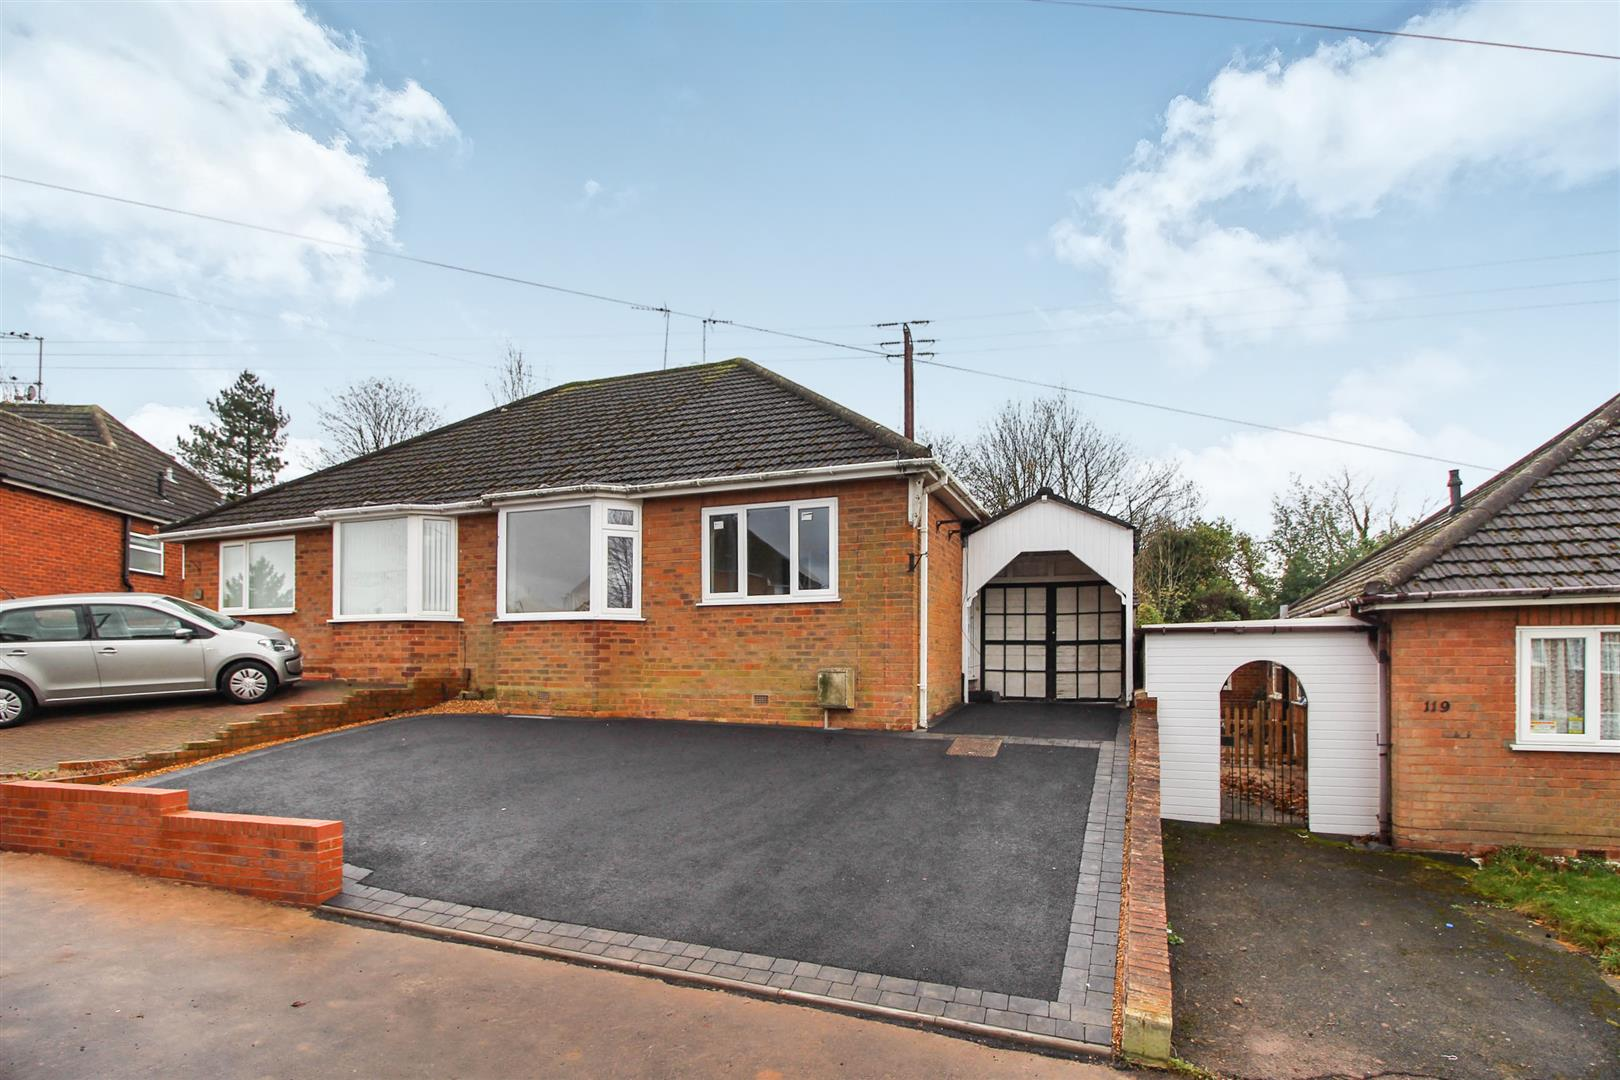 3 Bedrooms Semi Detached Bungalow for sale in Mason Road, Headless Cross, Redditch